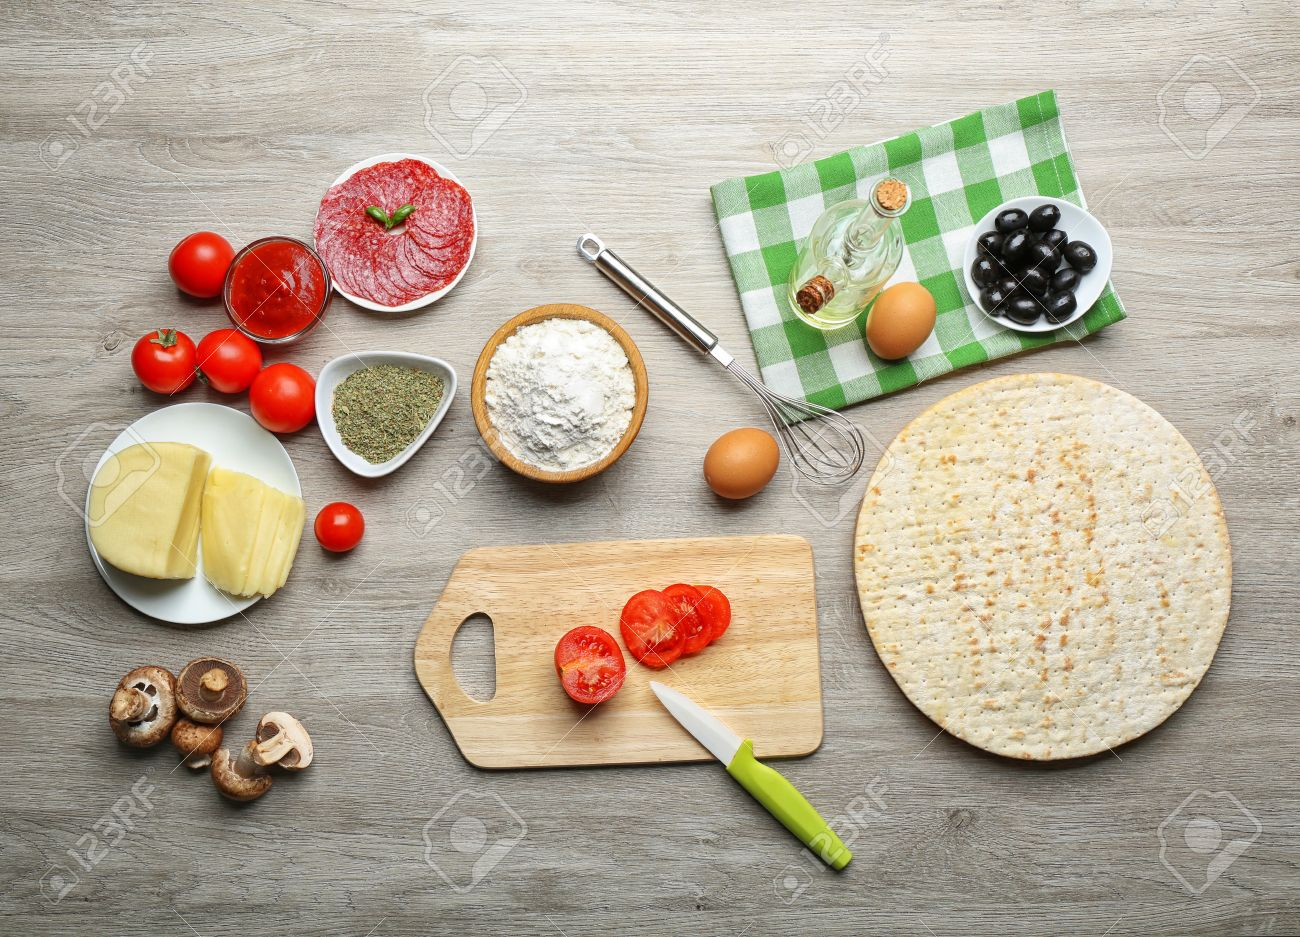 Table Top View ingredients for cooking pizza on wooden table, top view stock